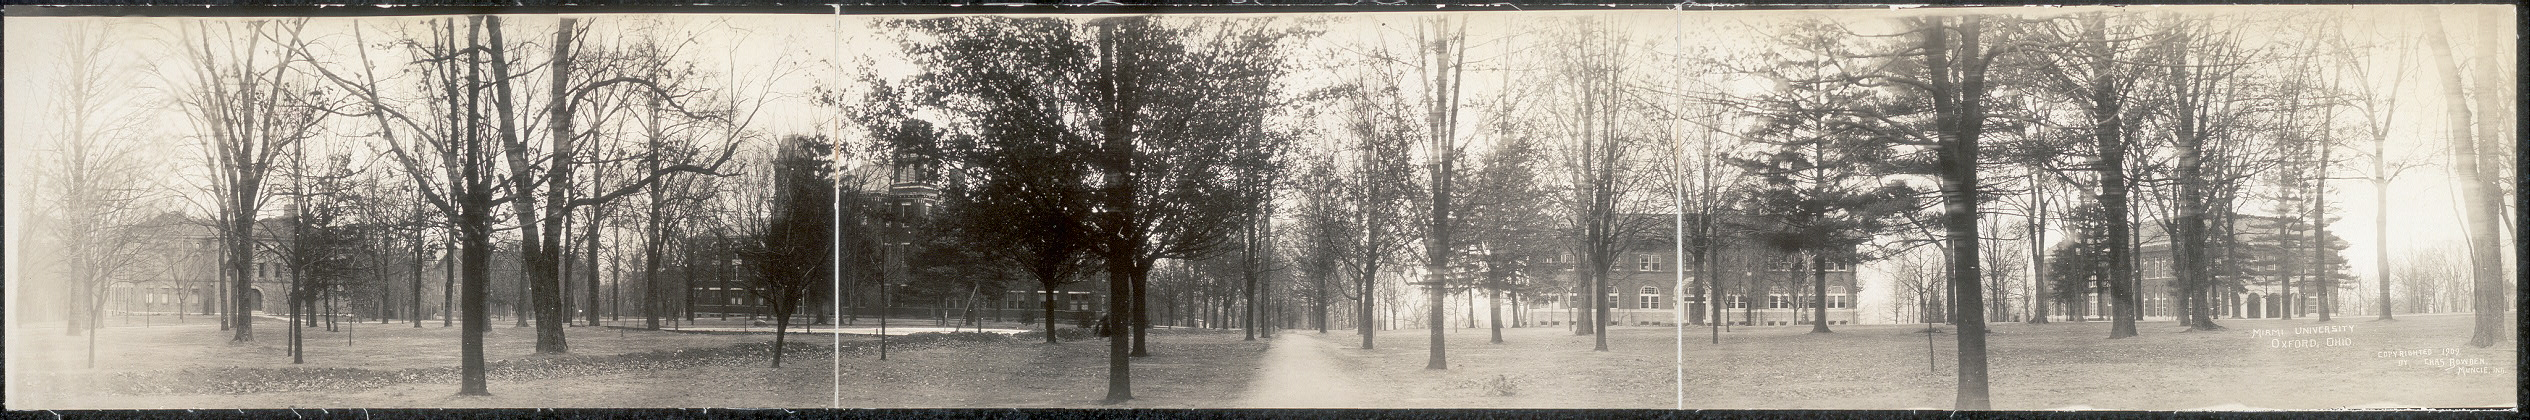 Miami University campus in Oxford, Ohio in 1909